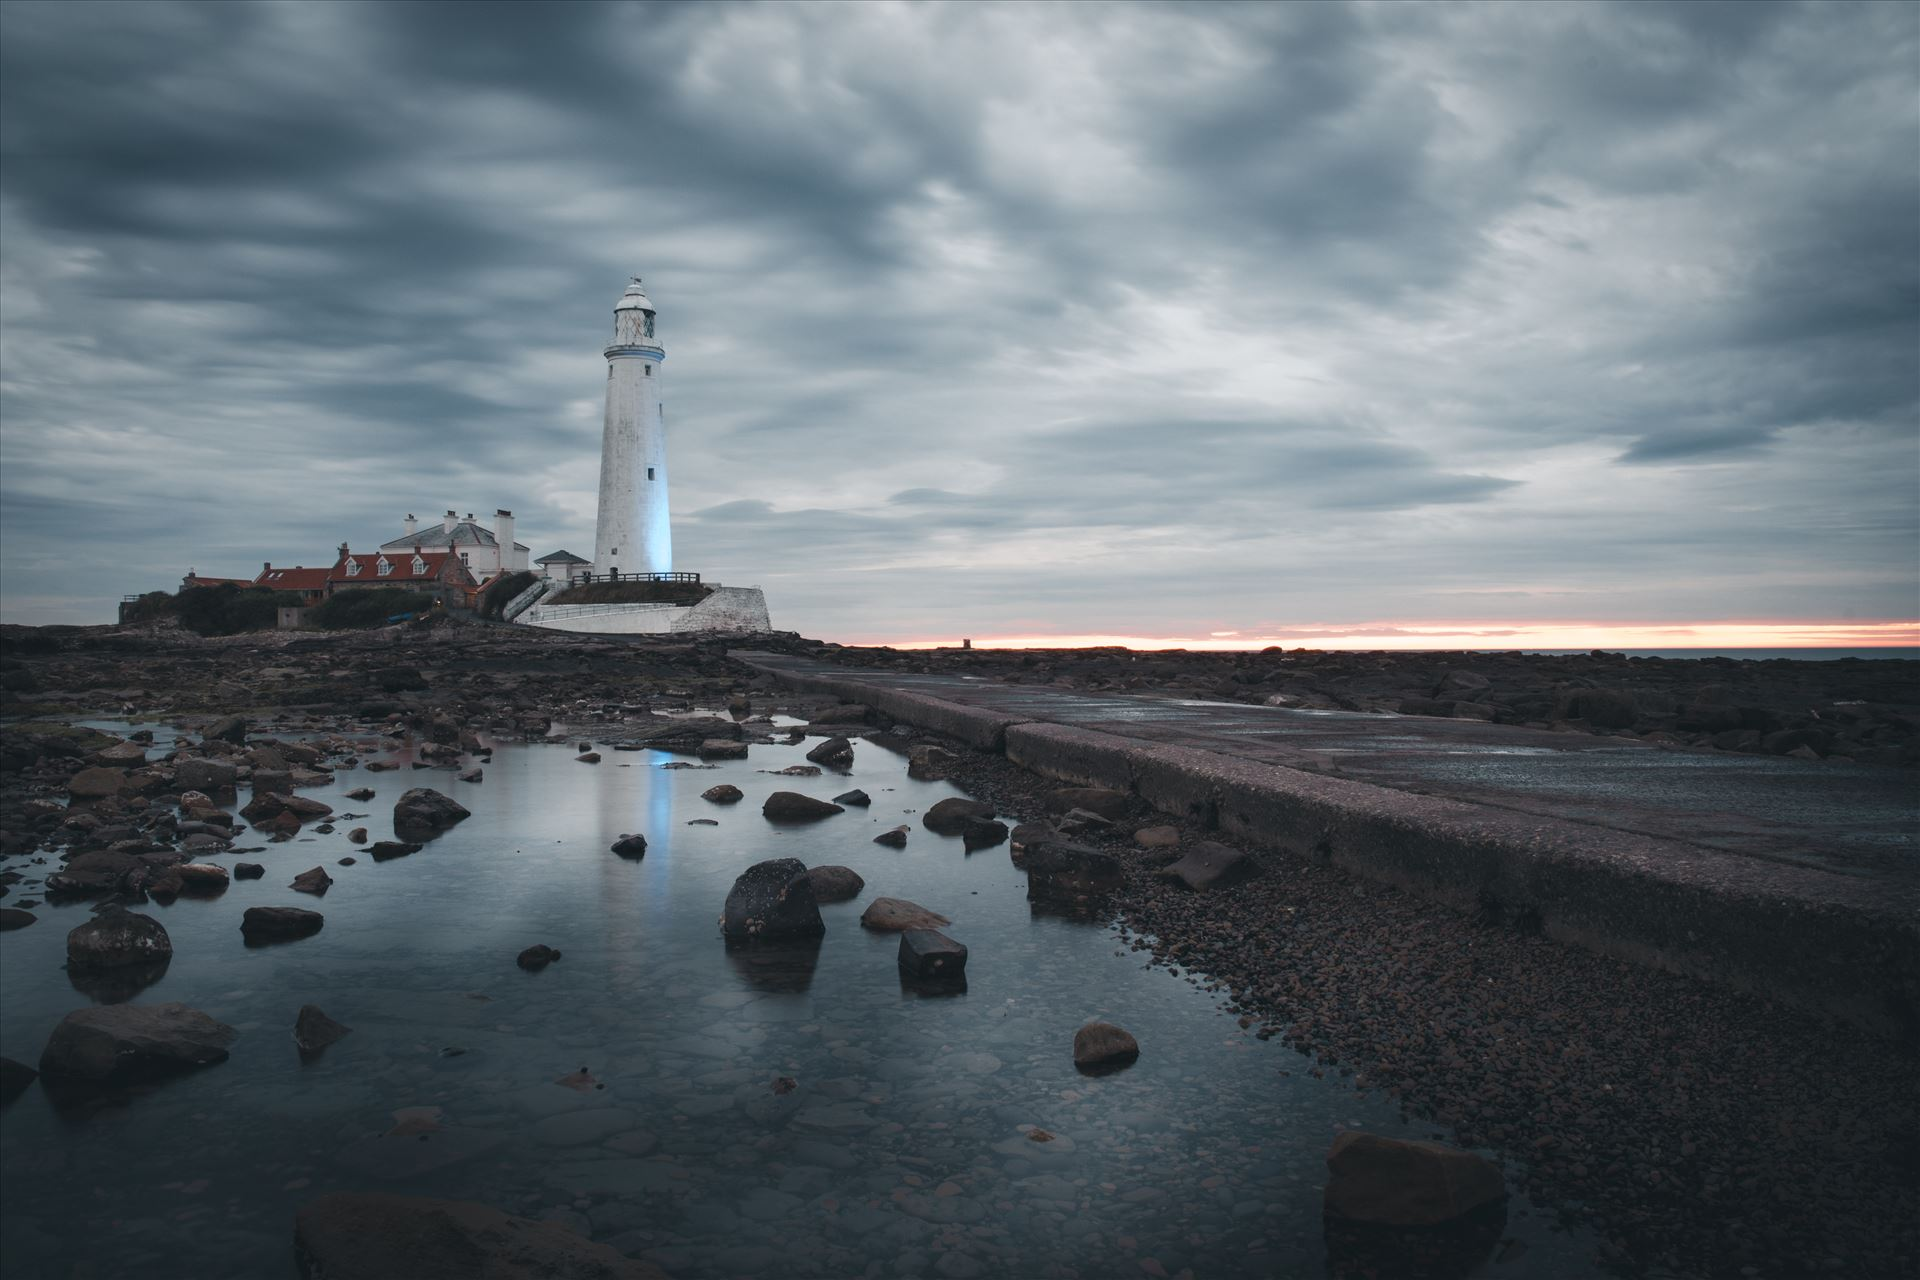 St Mary`s Island & lighthouse - St Mary`s lighthouse stands on a small rocky tidal island which is linked to the mainland by a short concrete causeway and is submerged at high tide. The lighthouse was built in 1898 & was decommissioned in 1984, 2 years after becoming automatic. by philreay